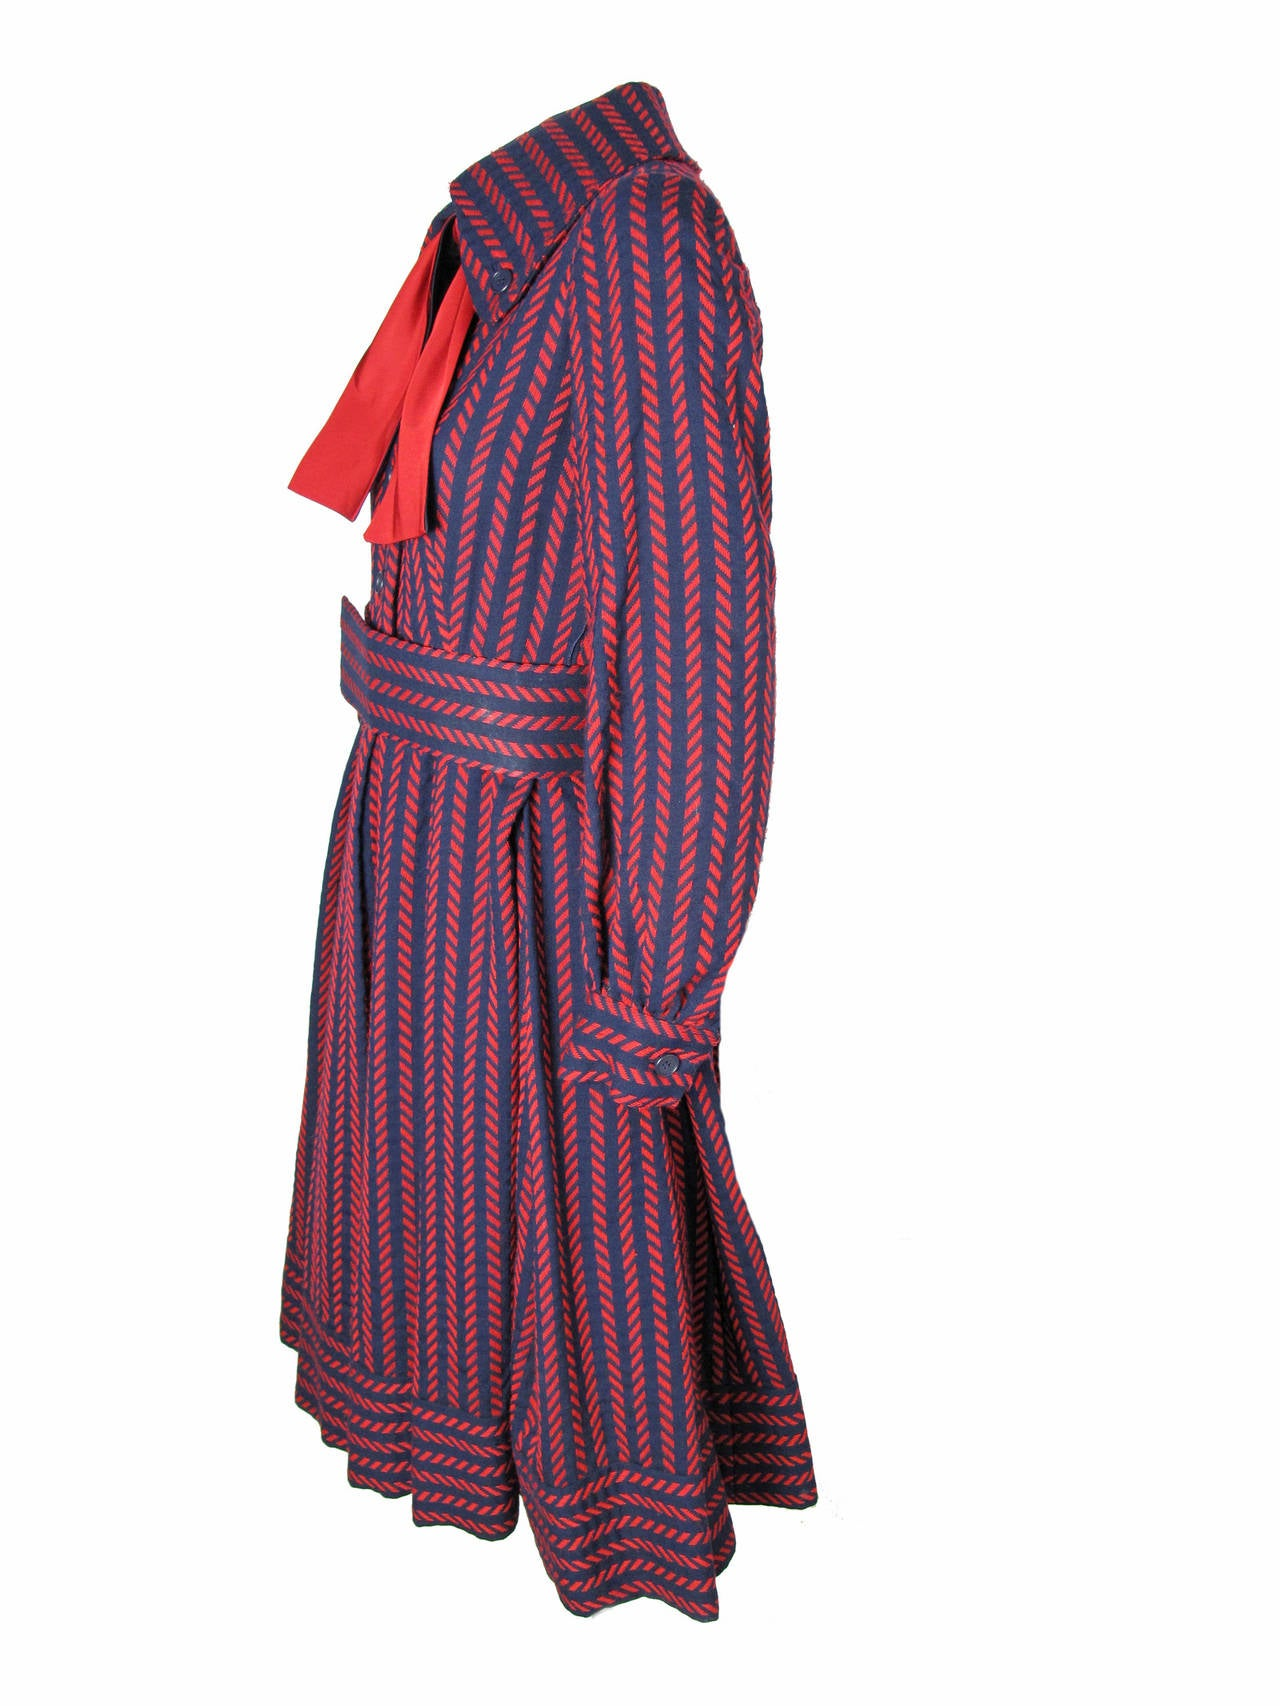 Black 1970s Geoffrey Beene Navy and Red Coat Dress -sale For Sale